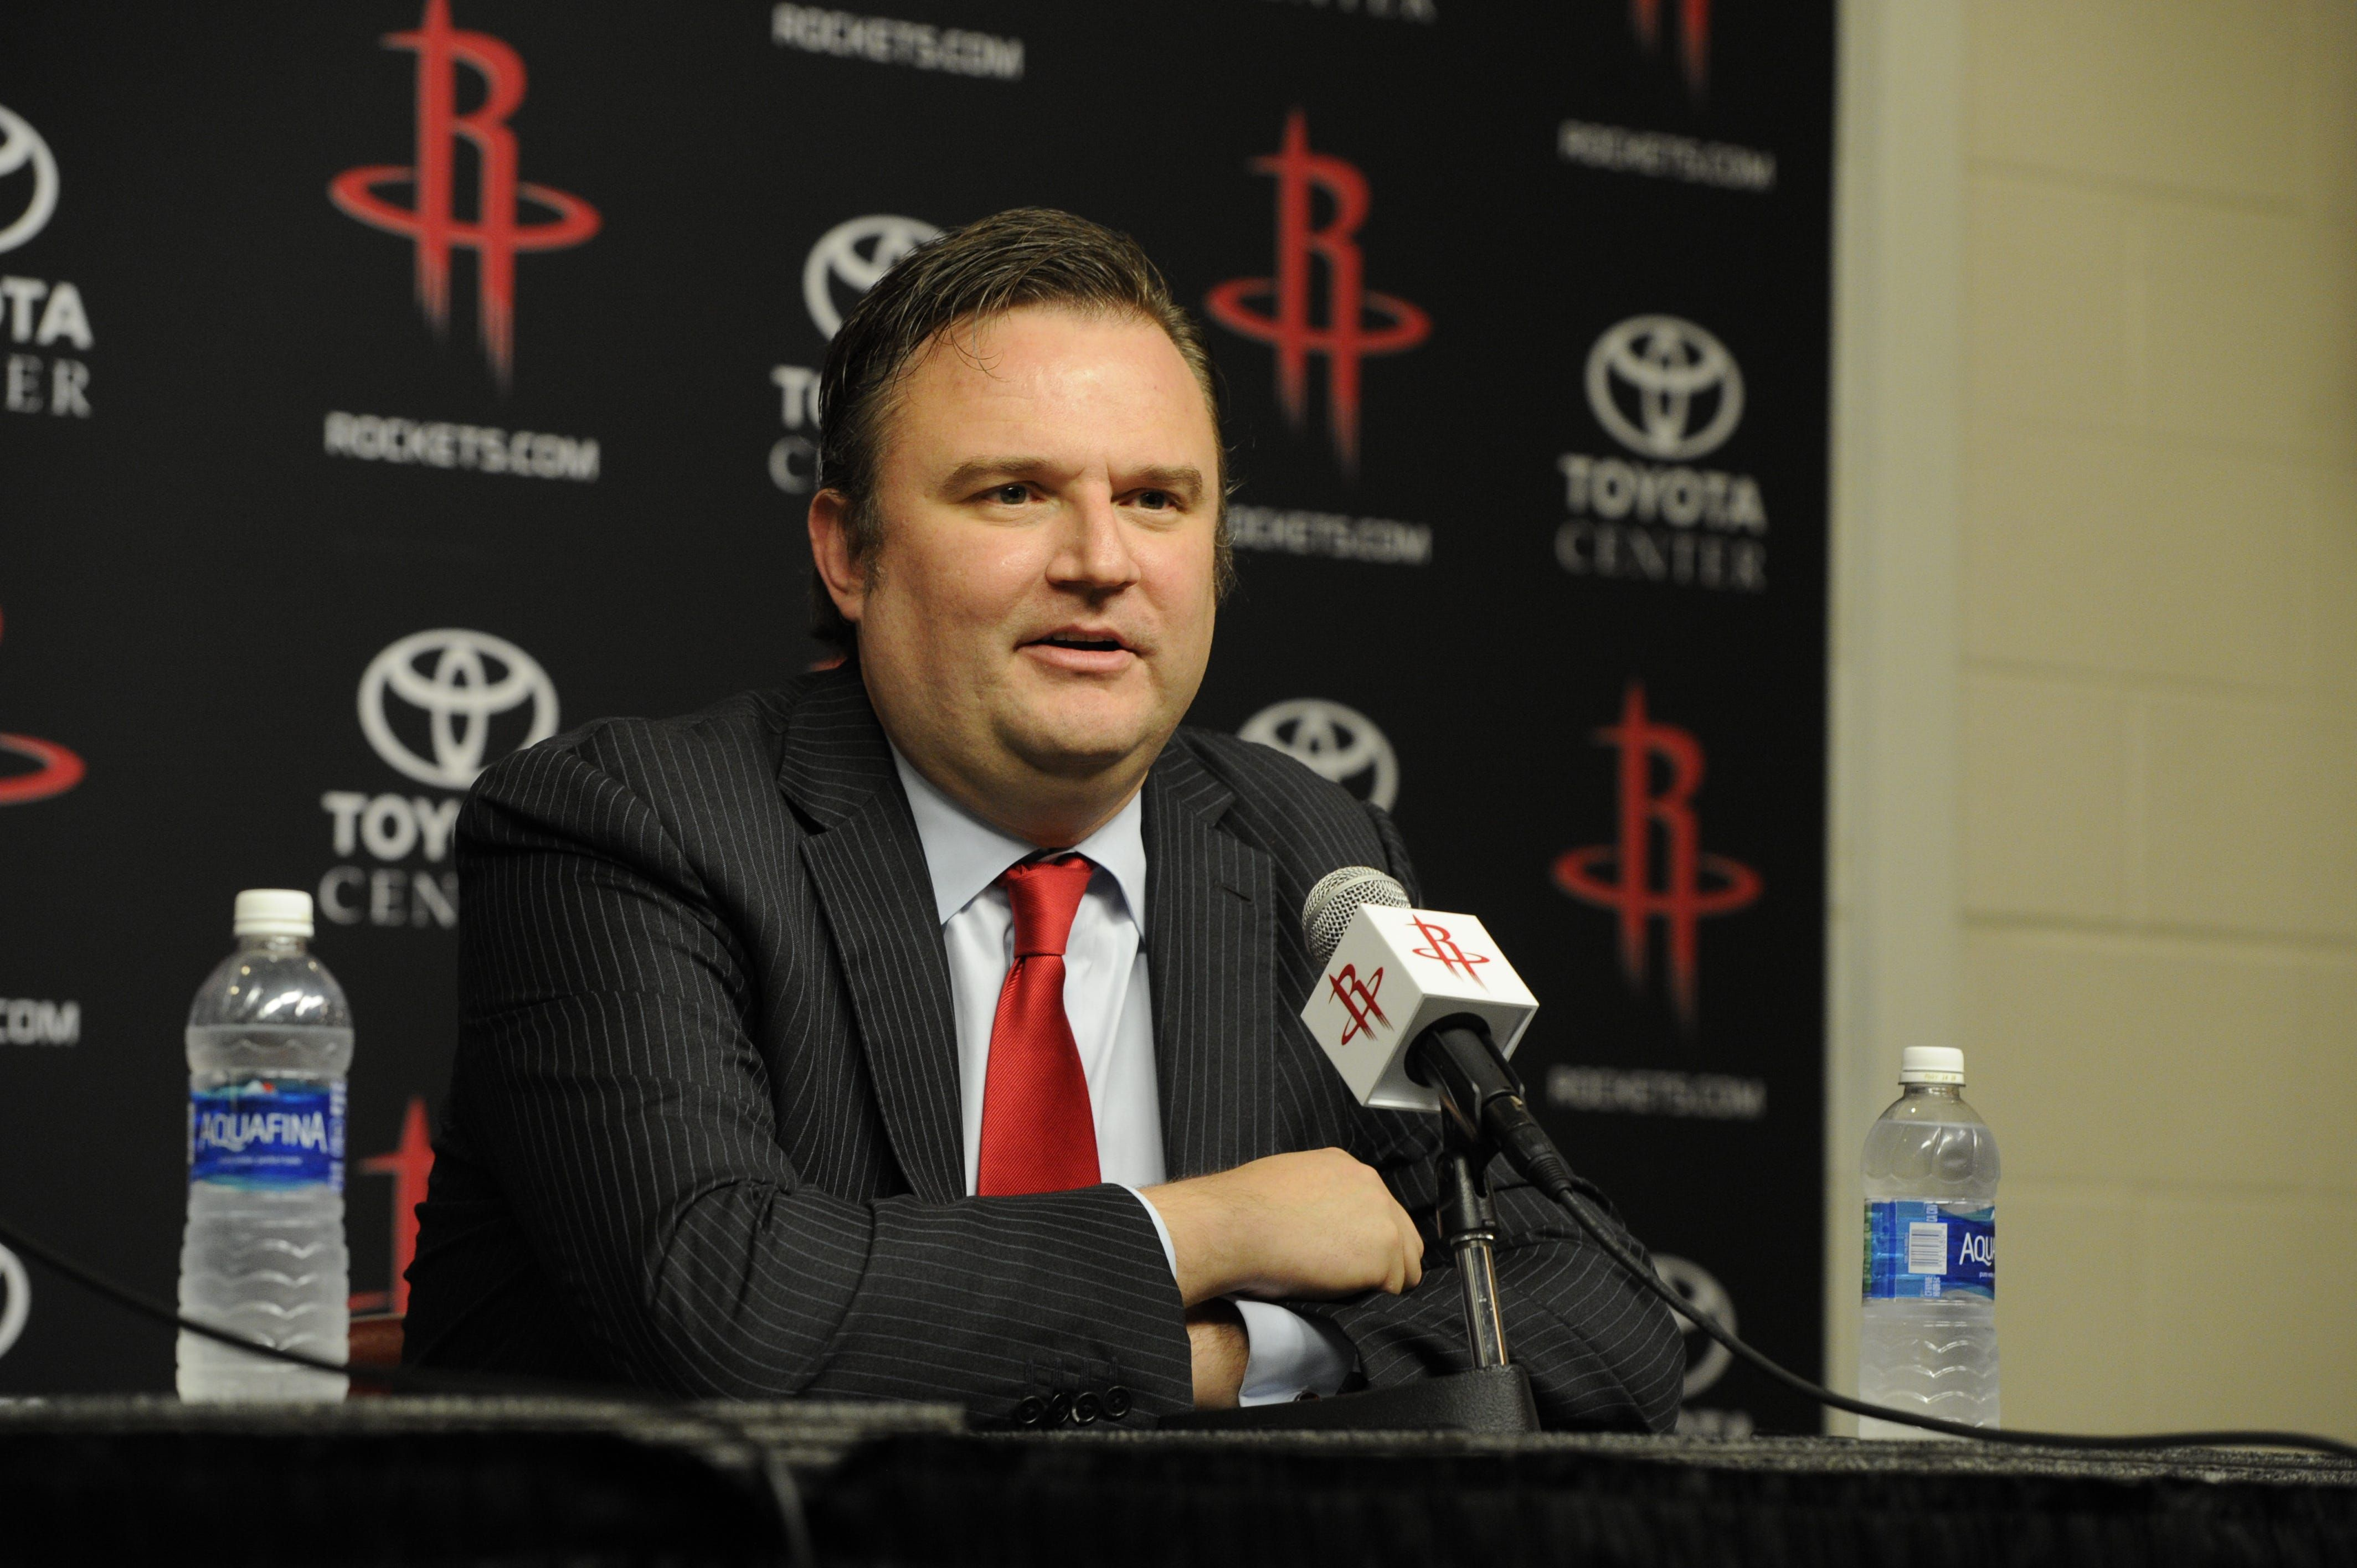 Adam Silver China wanted Rockets GM Daryl Morey fired